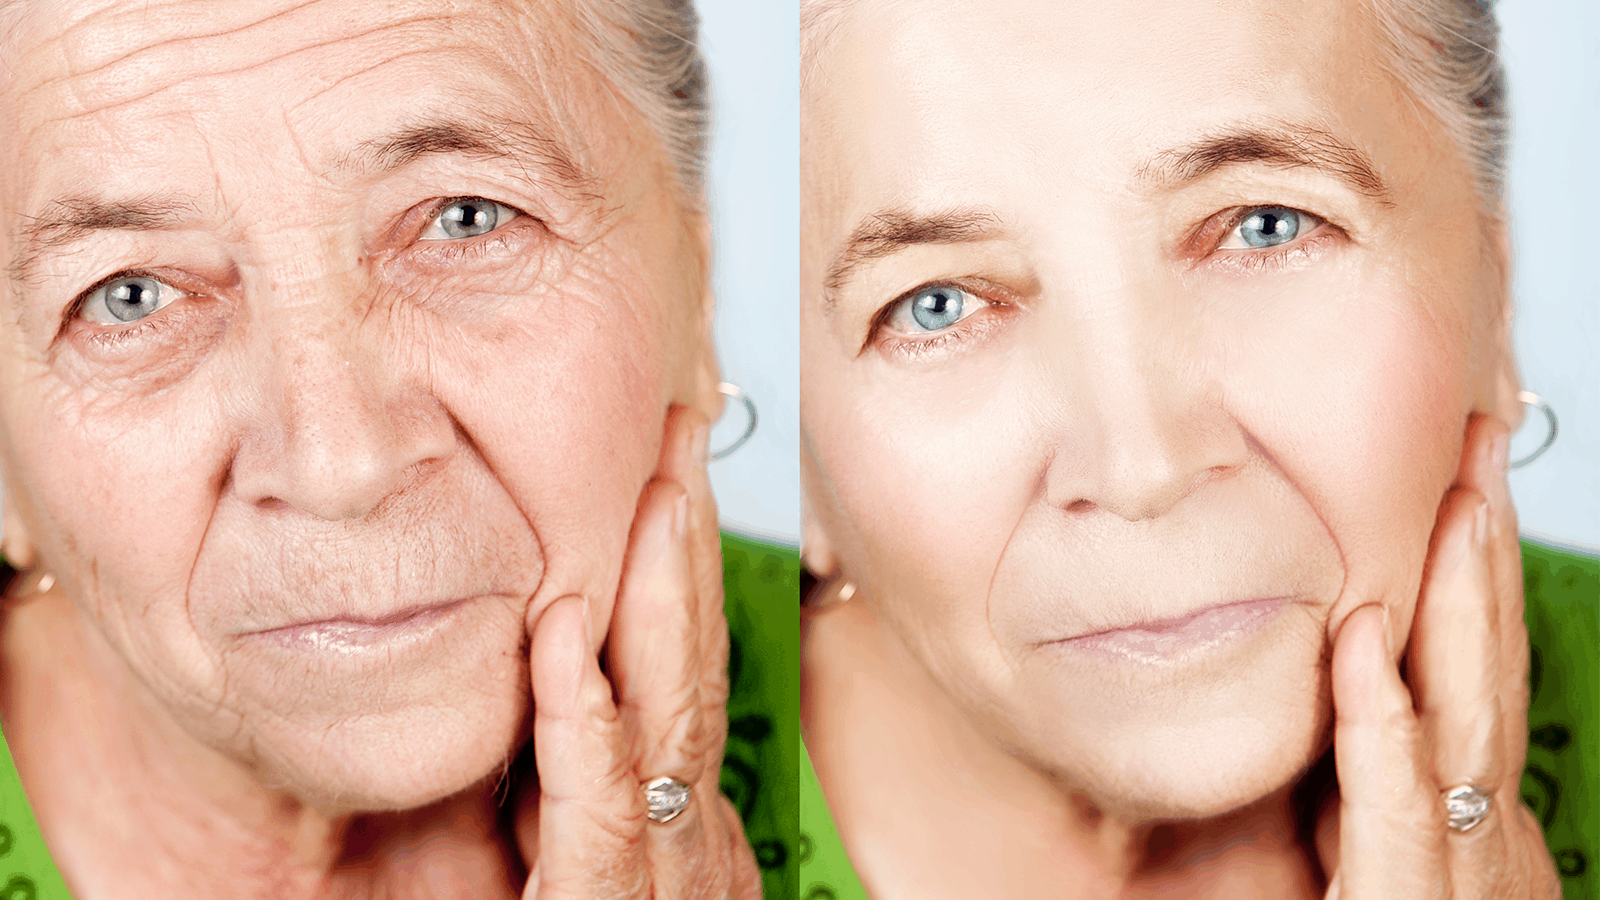 7 Homemade Mud Masks That Make You Look Younger Naturally